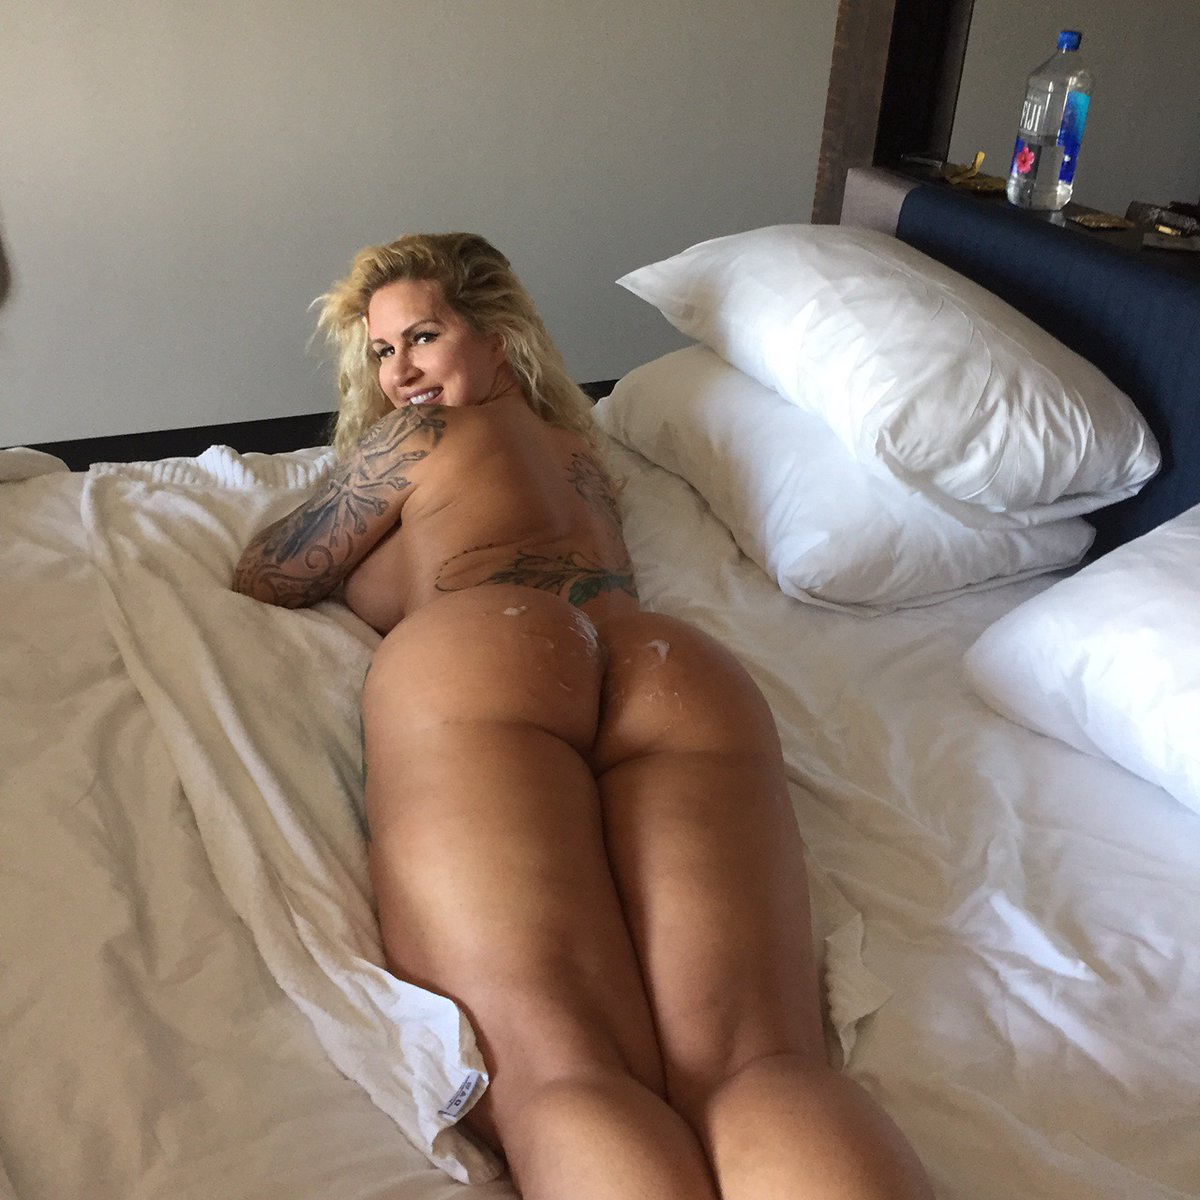 My replica vagina is craving to be roughed up GDYIcCHvjZ GLIES3lLYh